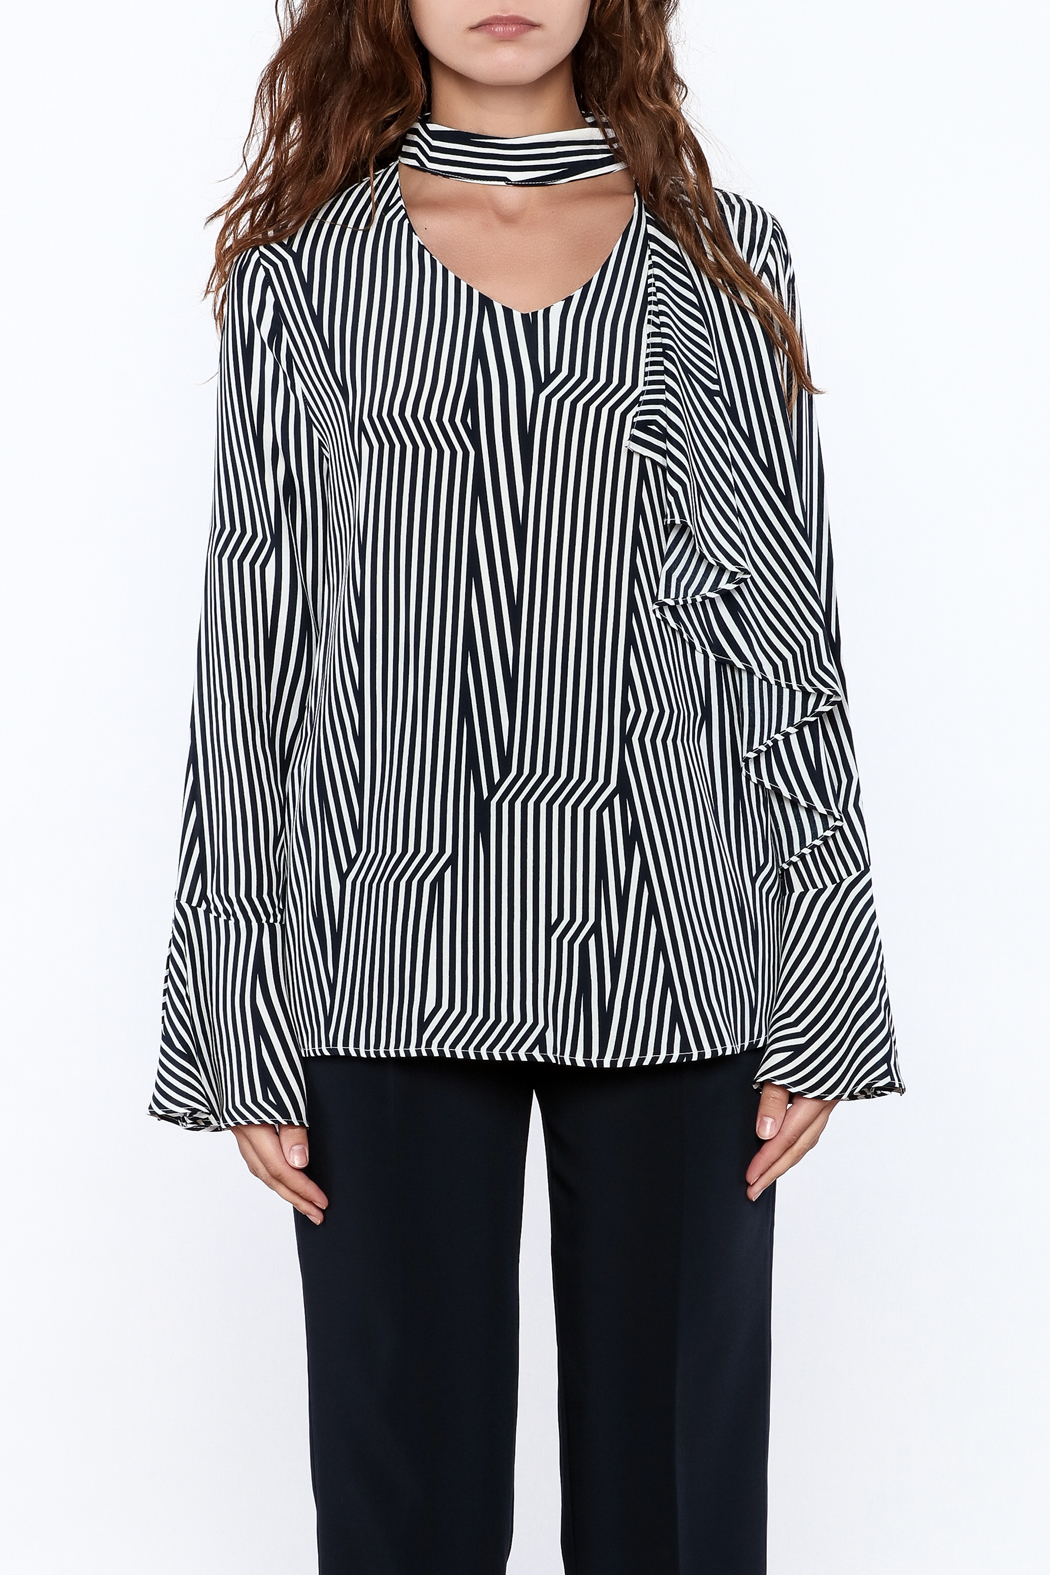 Pinkyotto Crooked Stripe Print Top - Front Full Image